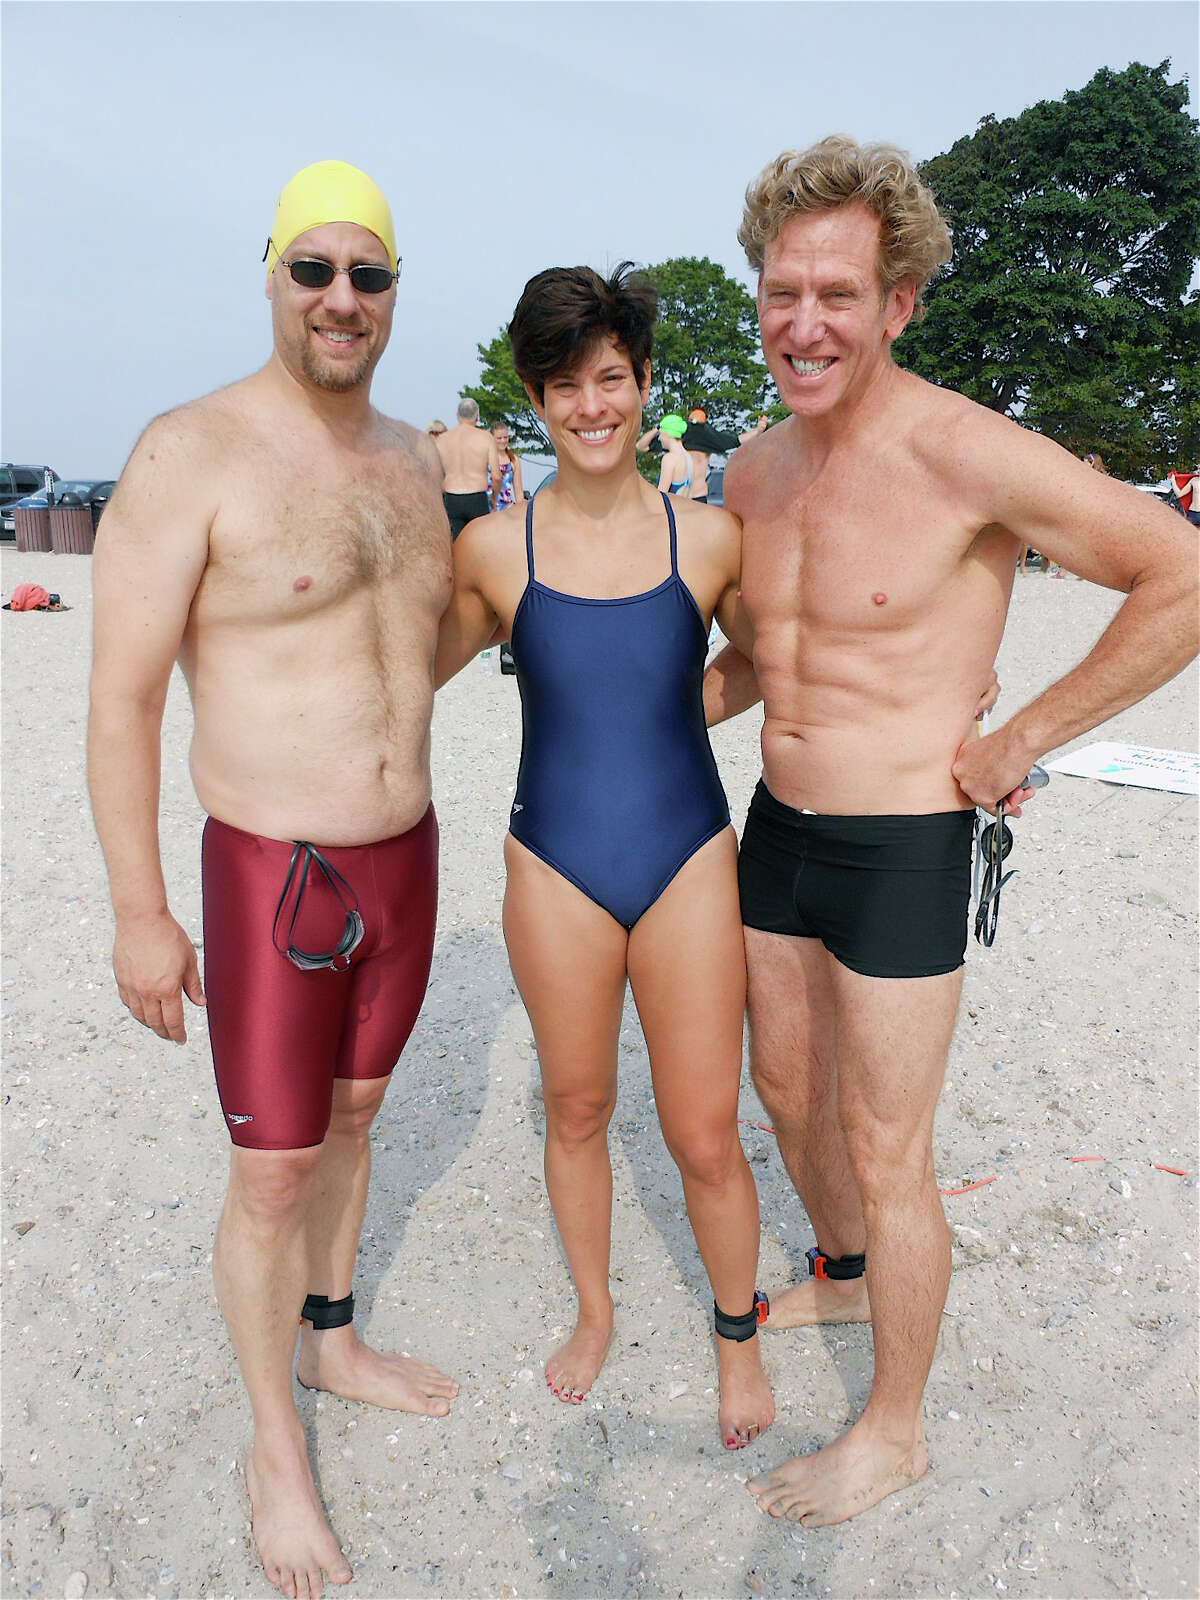 Point to Point swimmers Sunday included Jason Troiano, Bedford Hills, N.Y.; Jennifer Madonia, Oxford, and Tom Coffey, Trumbull.